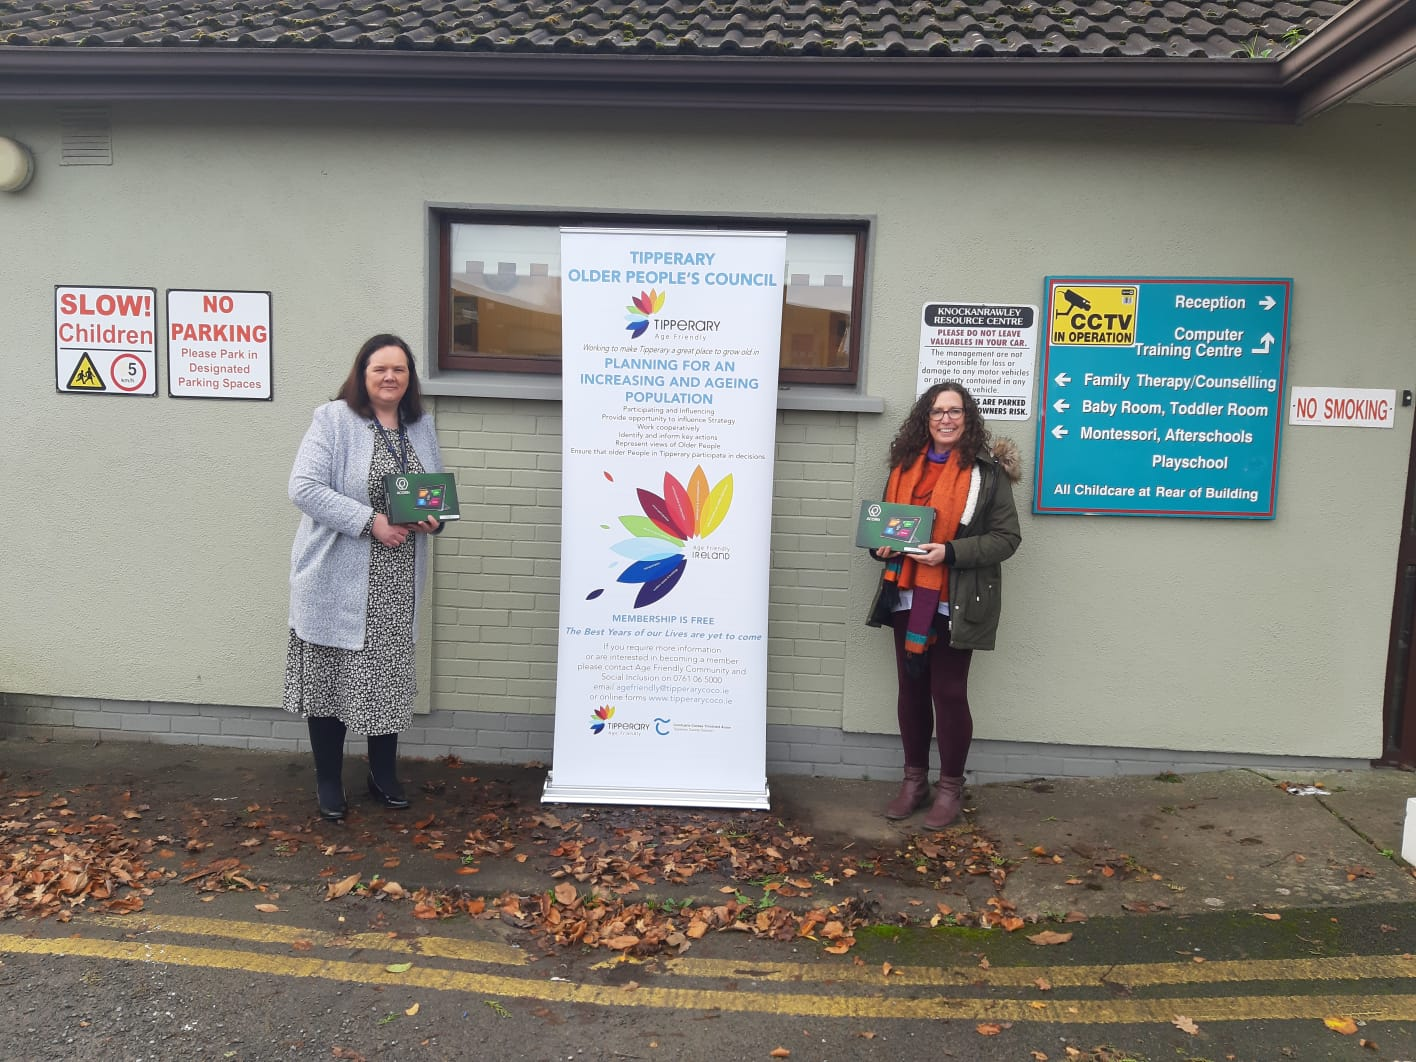 Ruth Smith Knockanrawley Community Resource Centre and Fiona Crotty Tipperary Age Friendly Programme Manager